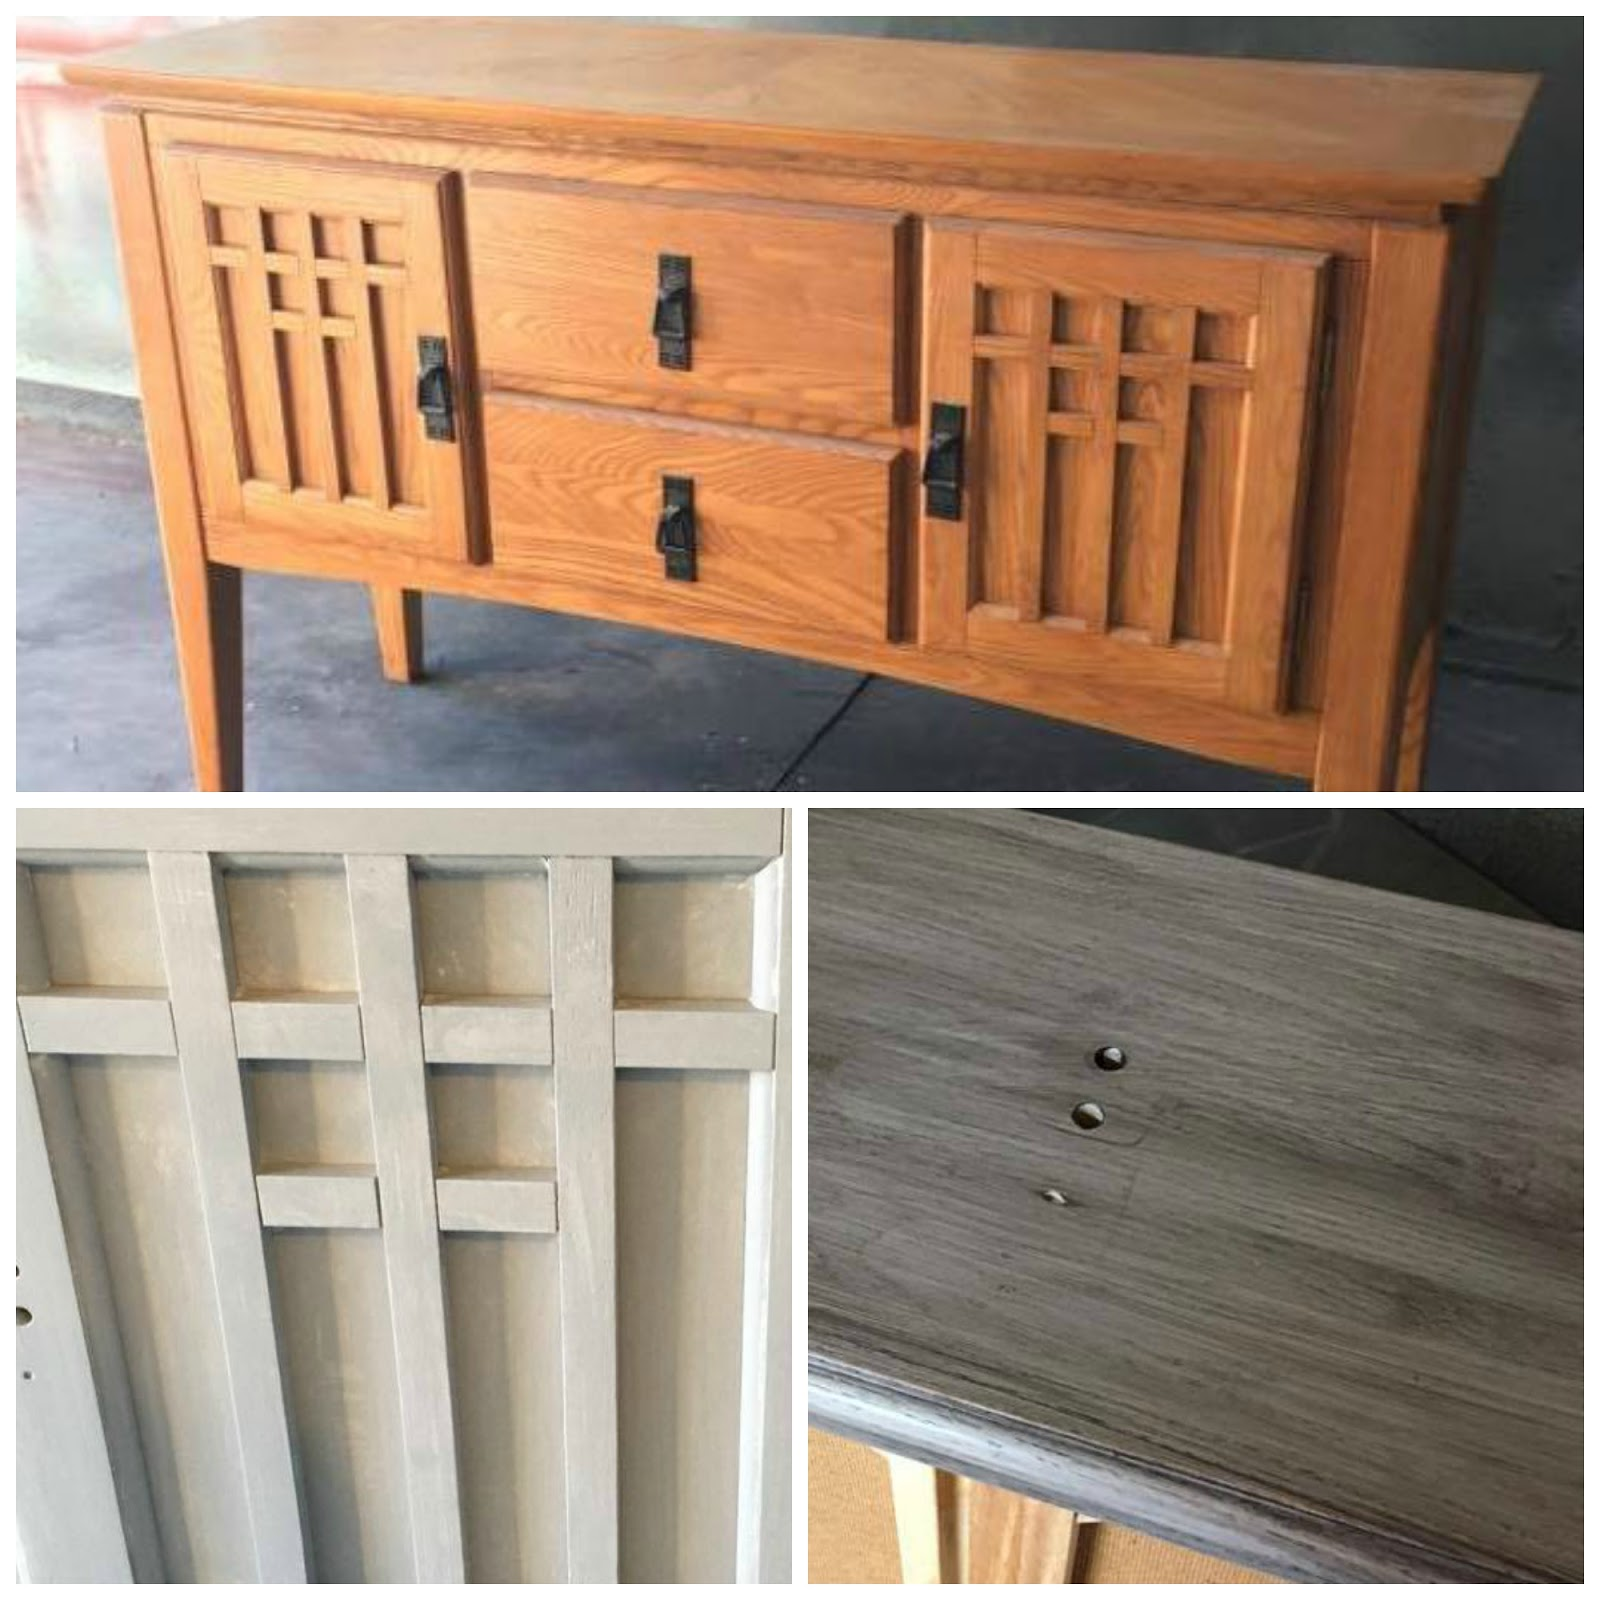 hardware supplies couch cabinet kitchen reproductions refinishing restoration old door furniture cabinets perfect oak antique